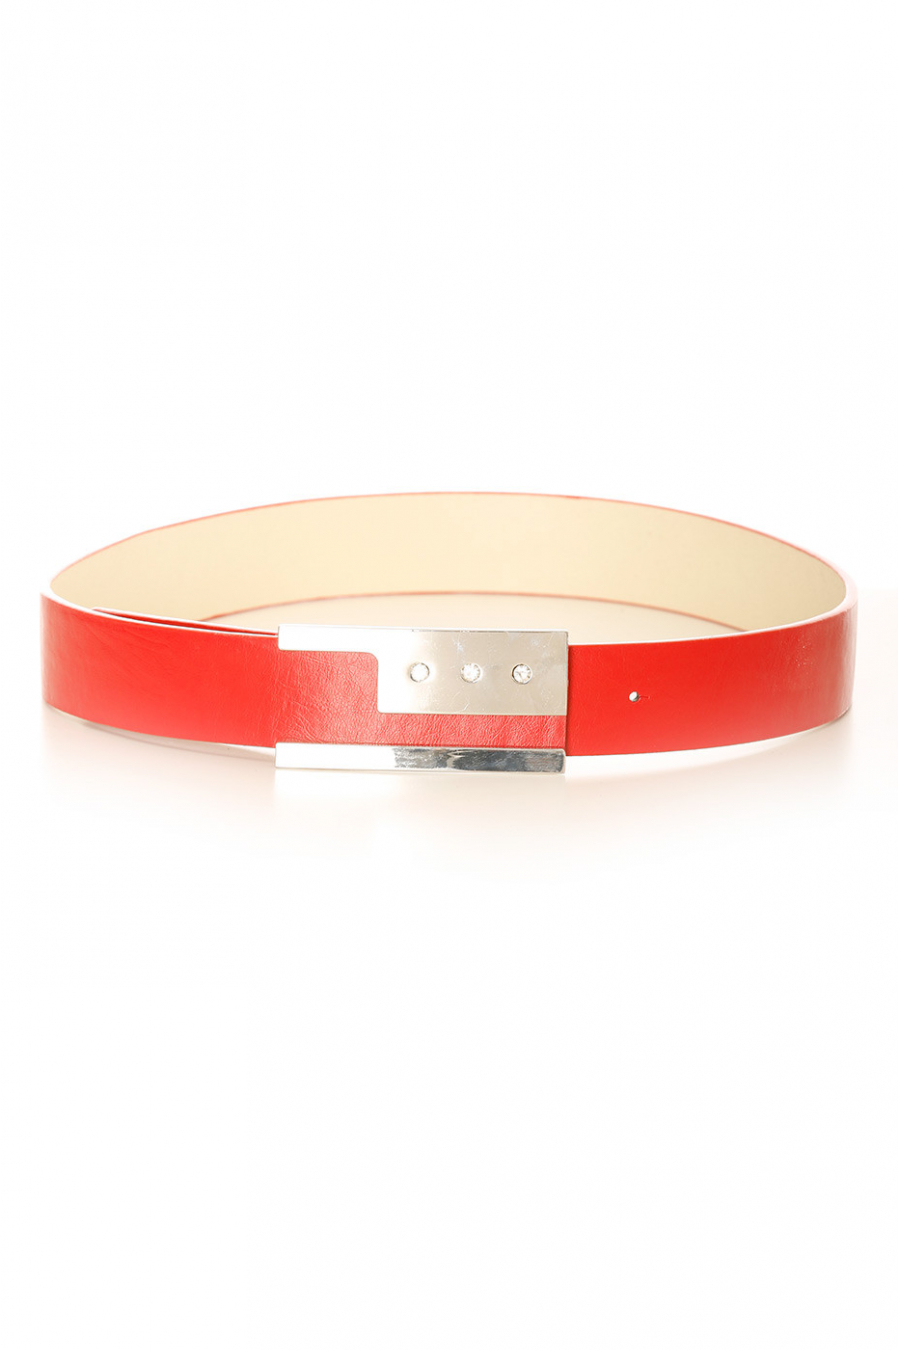 Red belt with silver buckle with encrusted rhinestones. LDE9016